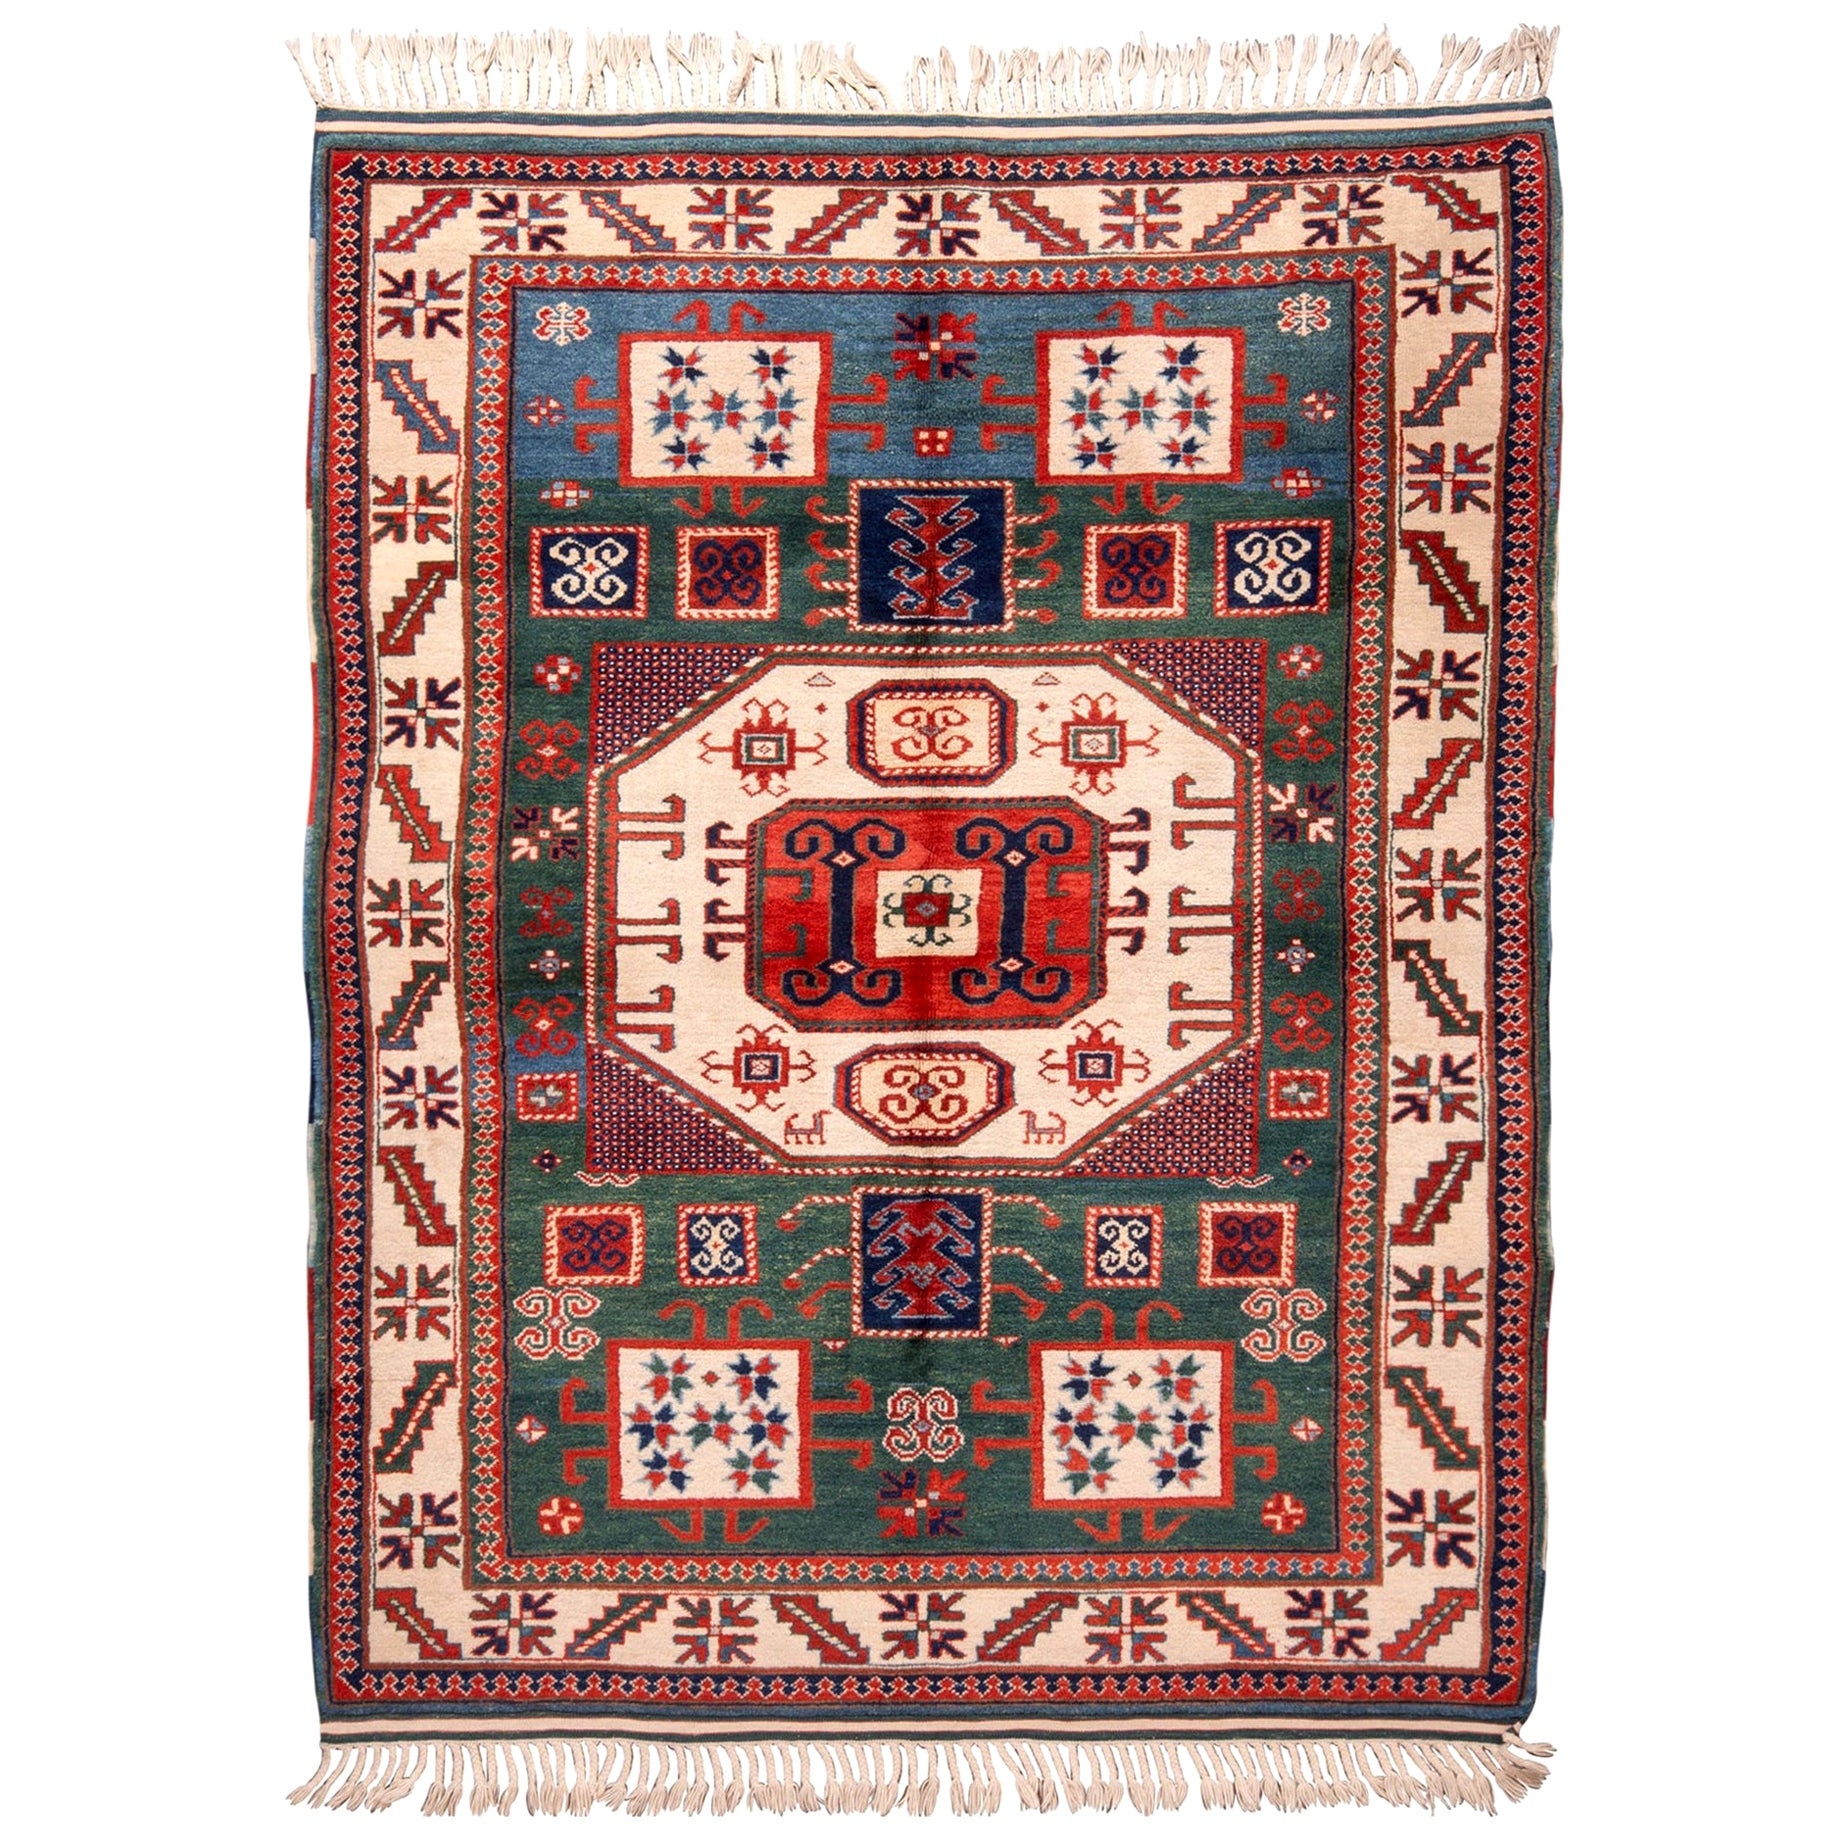 Rug & Kilim's New Kazak Transitional Red and Green Wool Rug with Horn Motifs